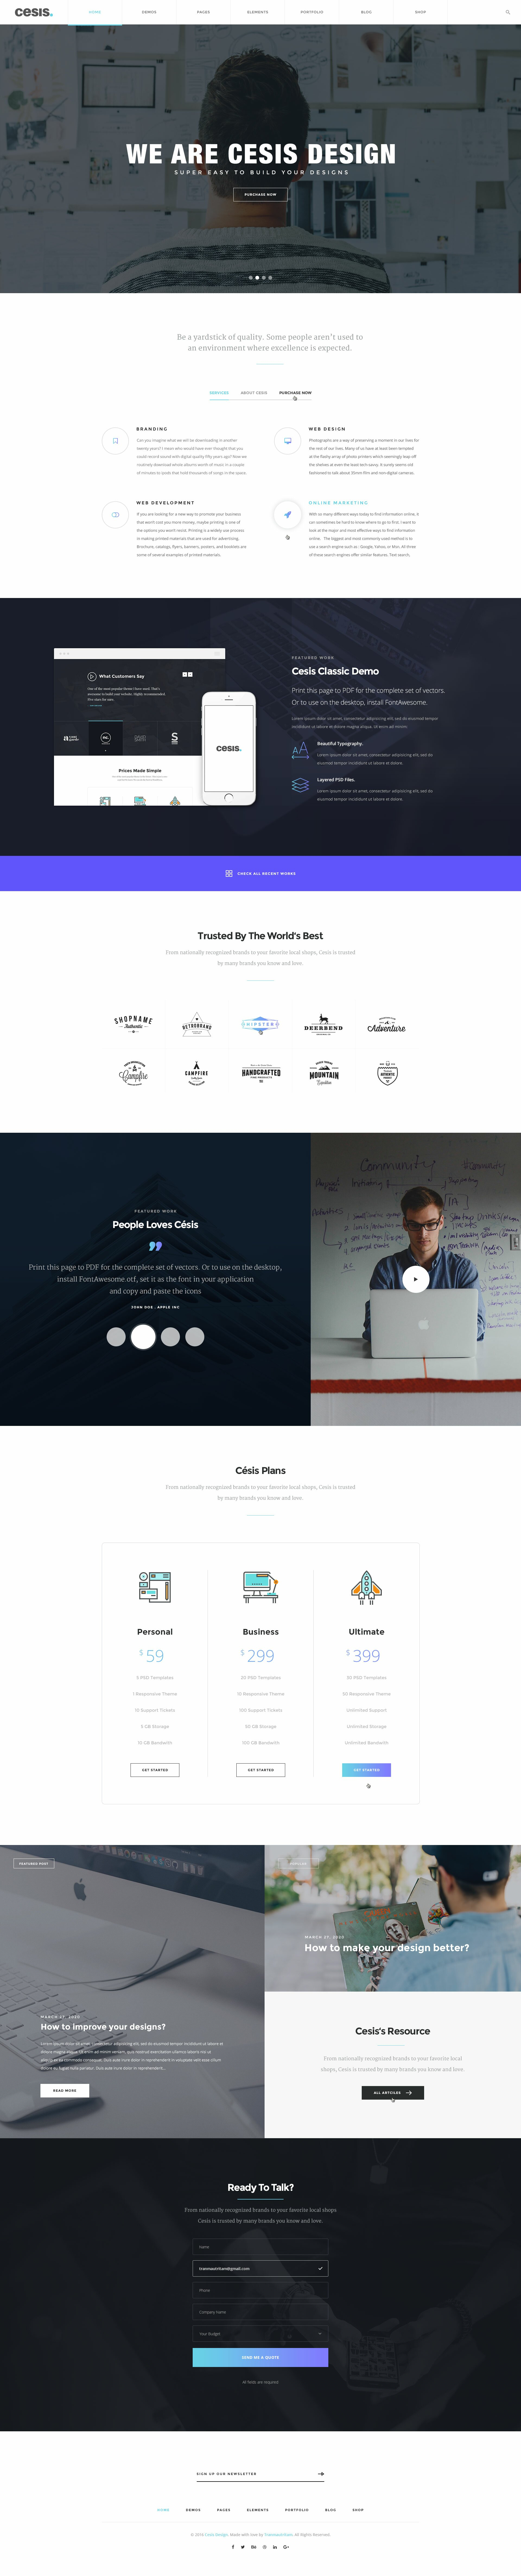 Free PSD Template – Cesis Design for Agency